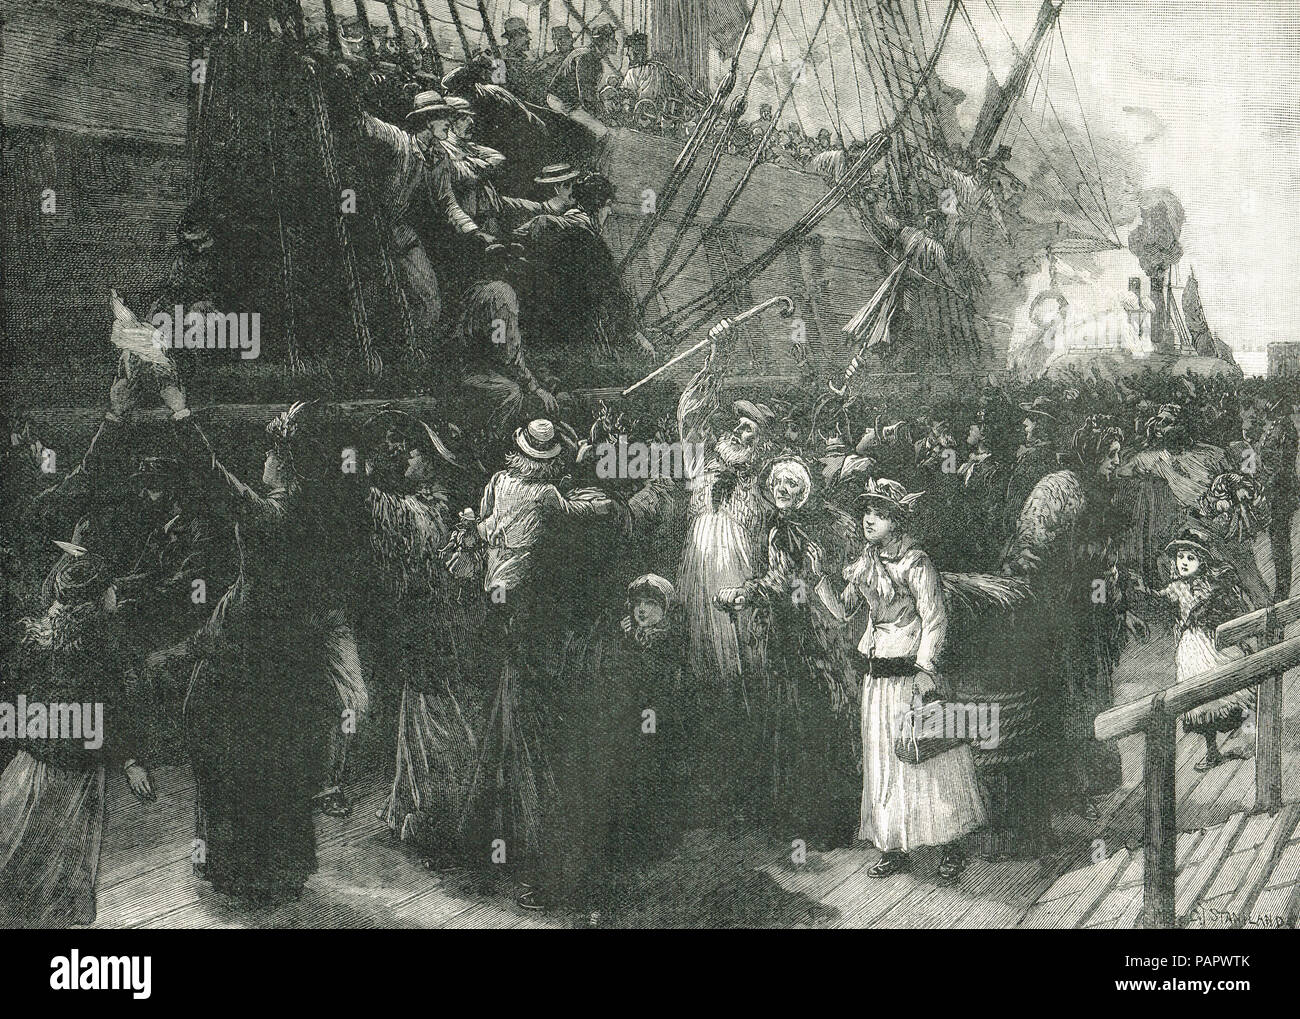 On board an Emigrant ship, Irish famine, The Great Famine 1845-1849 - Stock Image